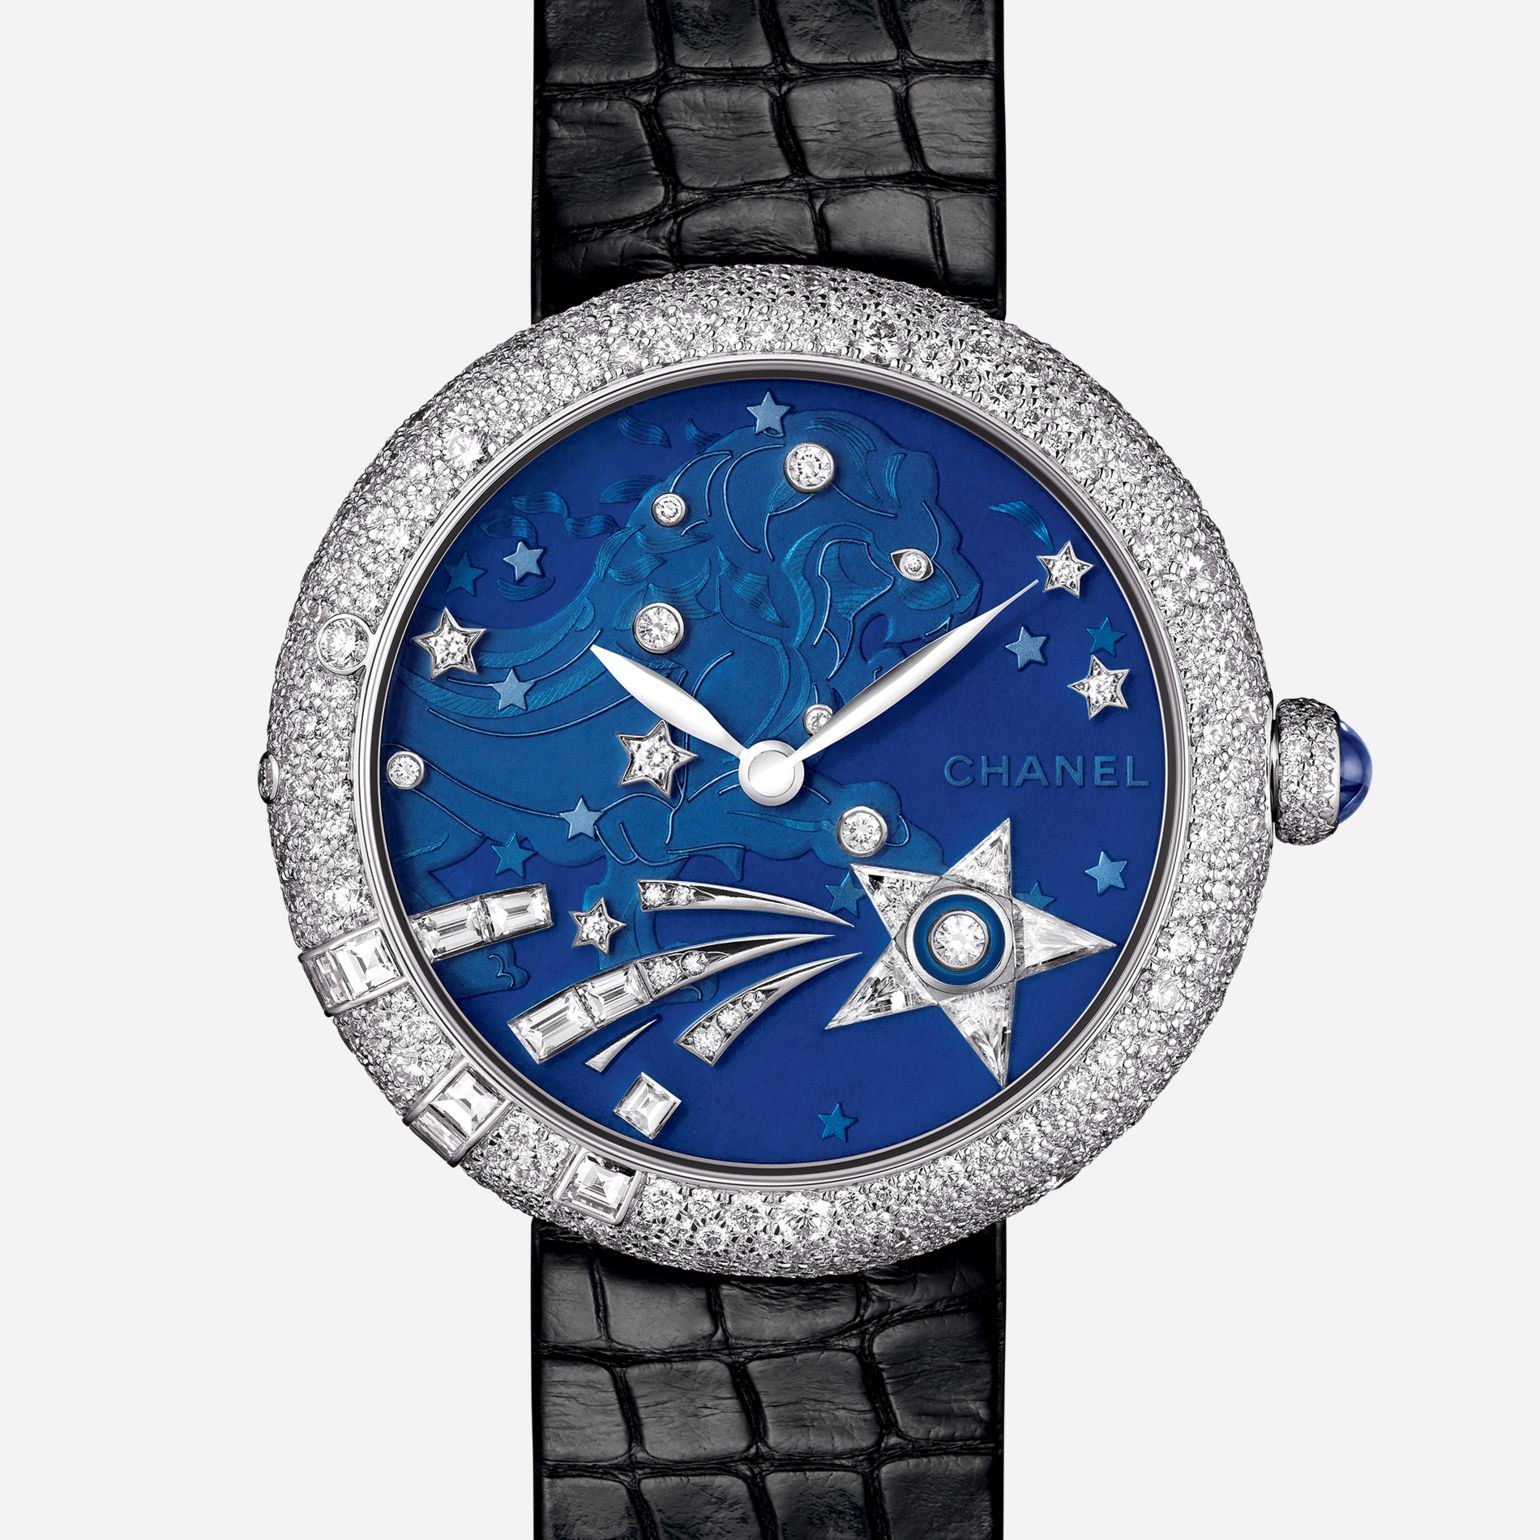 Uhr Mademoiselle Privé Constellation du Lion – transparentes blaues Grand-Feu-Email und Diamanten